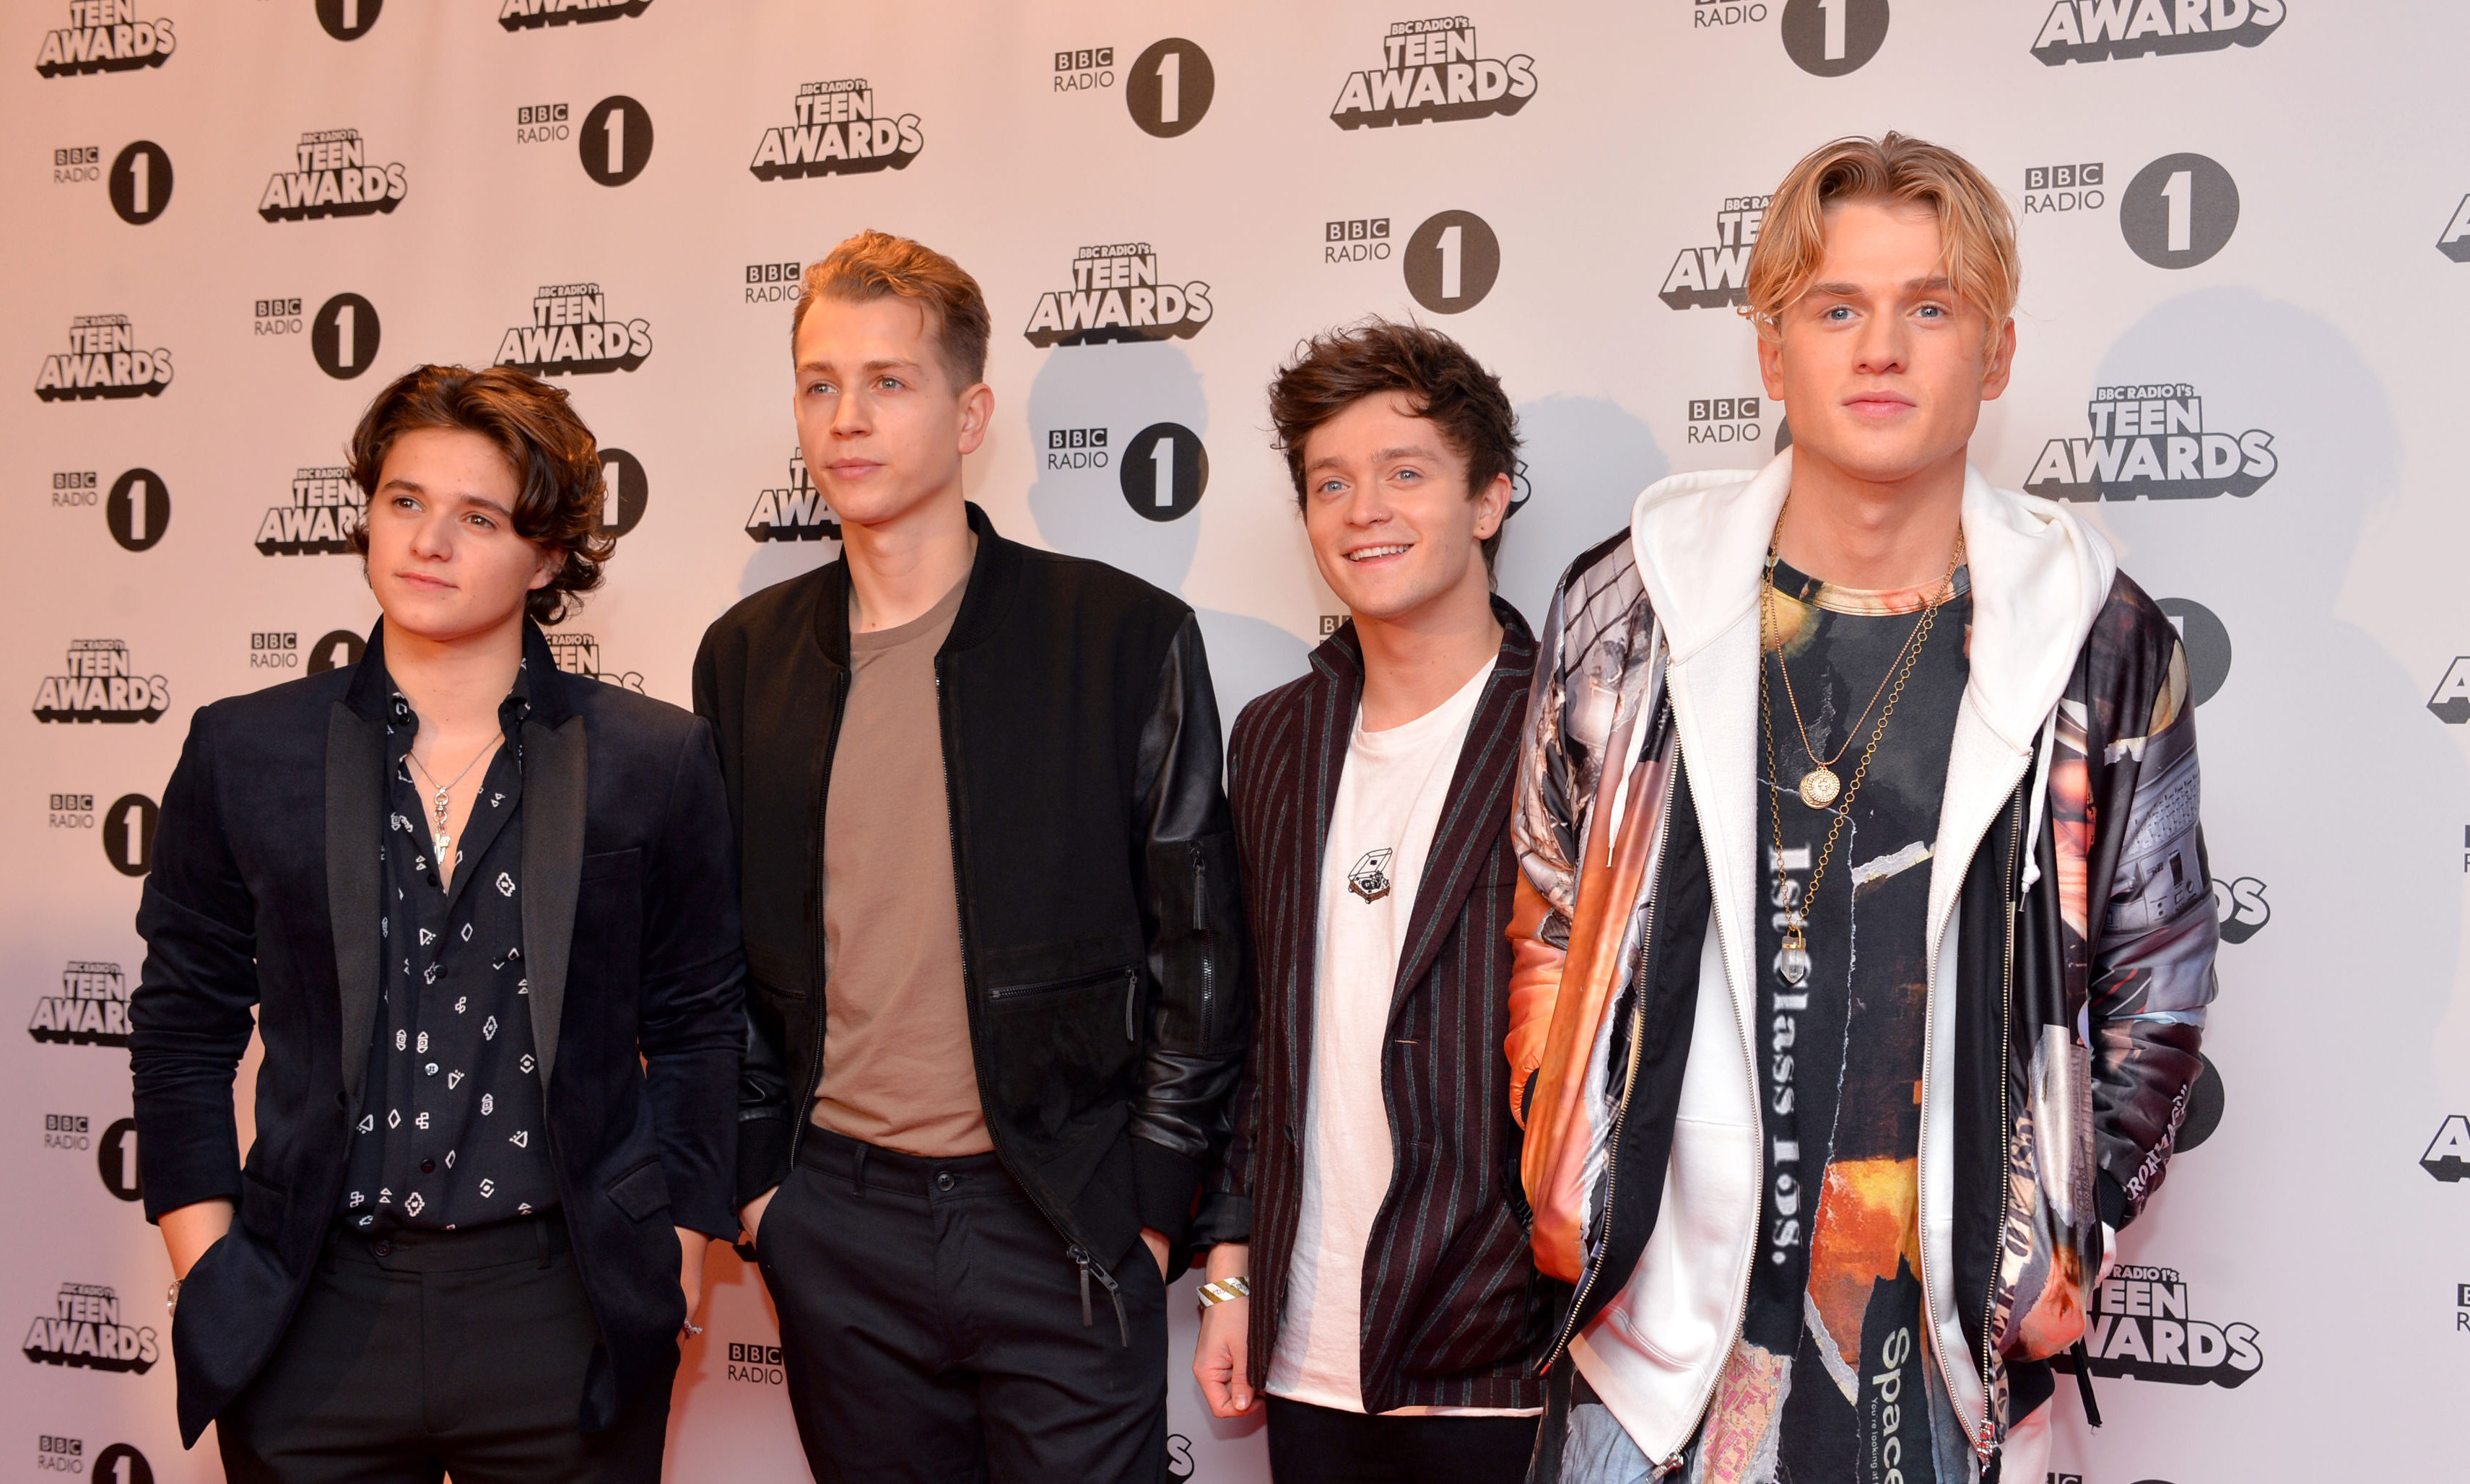 Bradley Simpson, James McVey, Connor Ball and Tristan Evans of The Vamps.